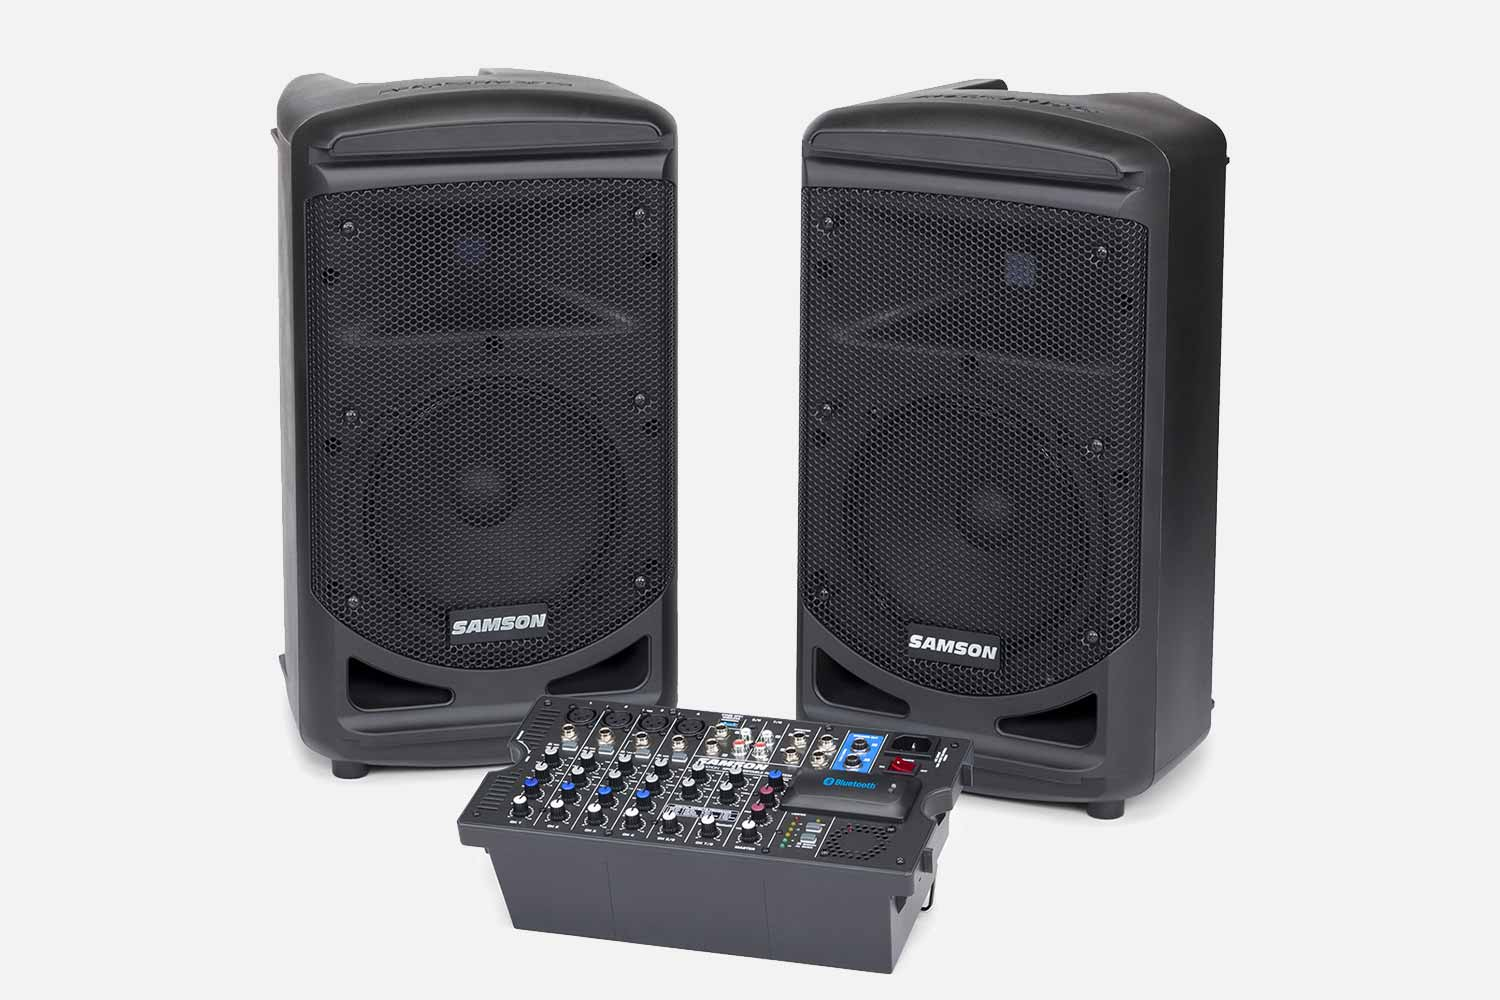 Samson XP800 - 800-Watt Portable PA (5366121595044)